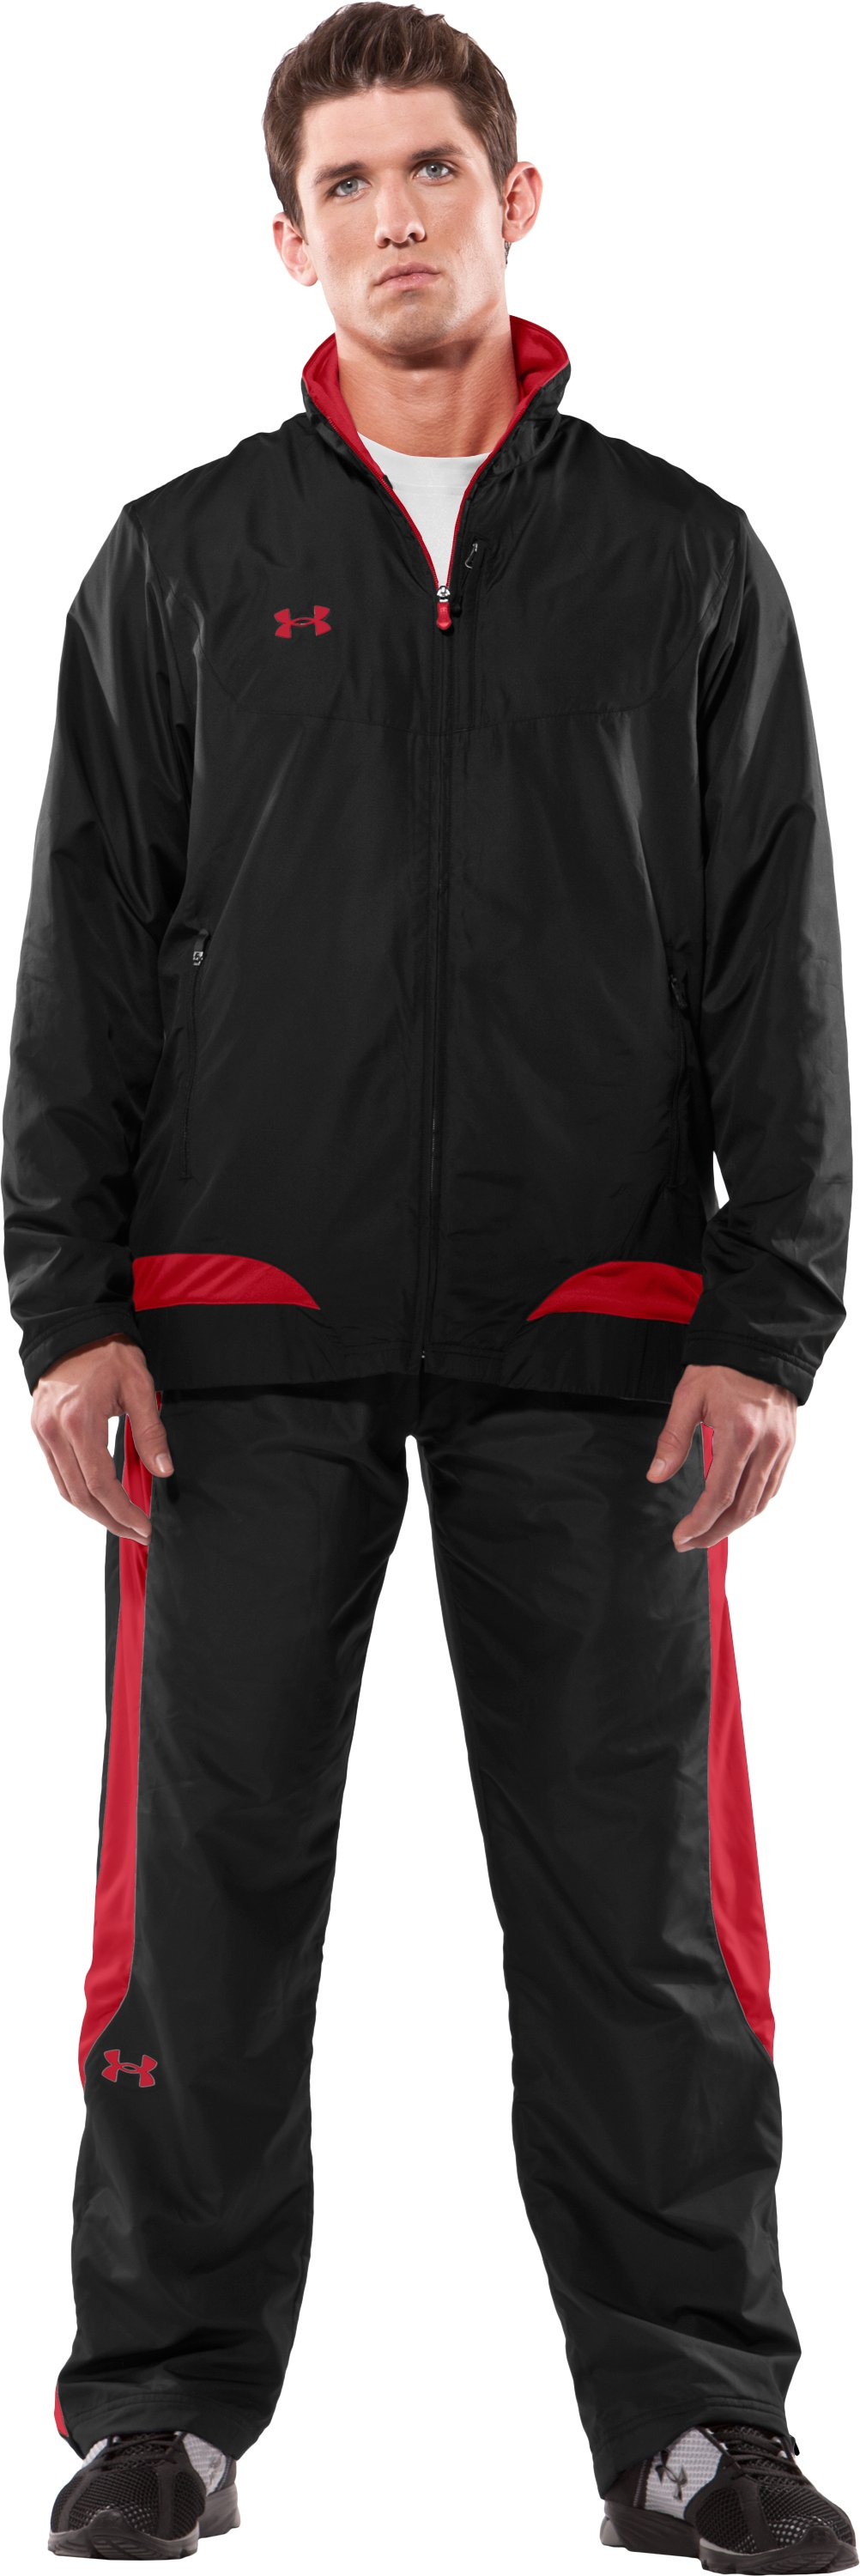 Men's Canuck Hockey Warm-Up Jacket, Black , Front